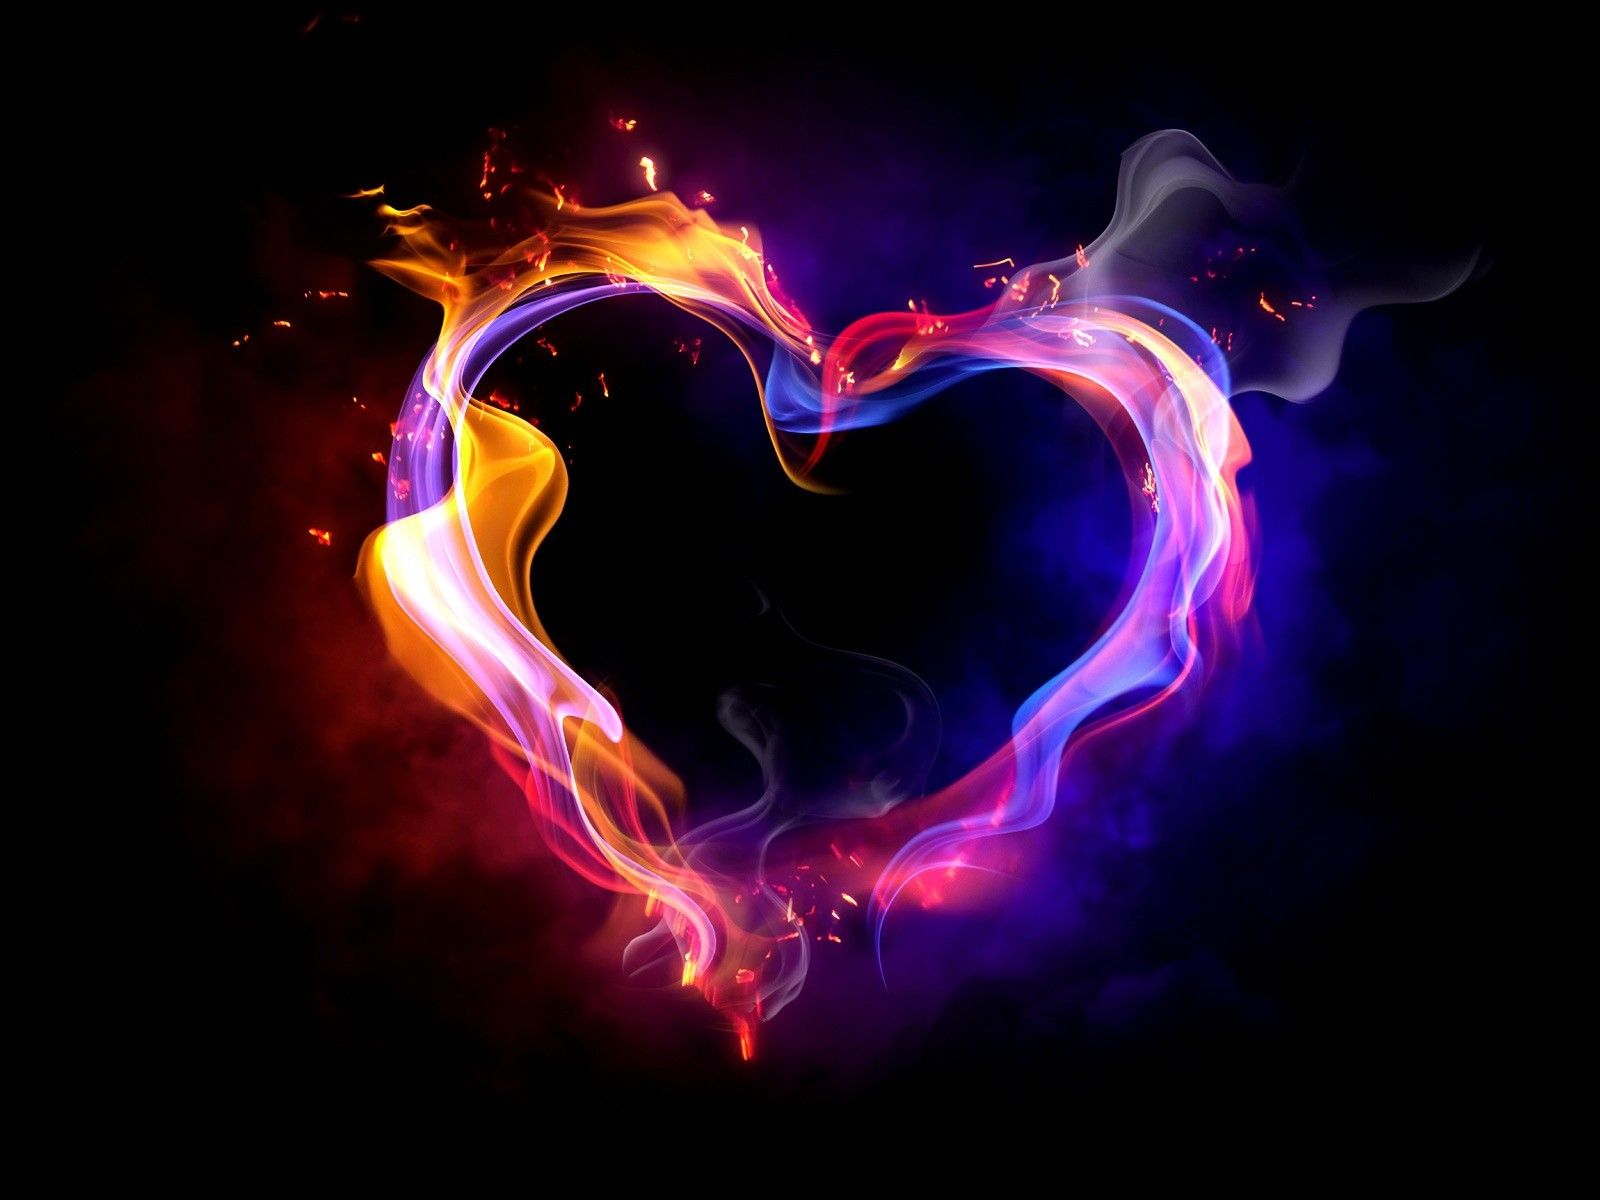 Burning Love Hd Wallpapers: Love Heart 3d Wallpaper Hd